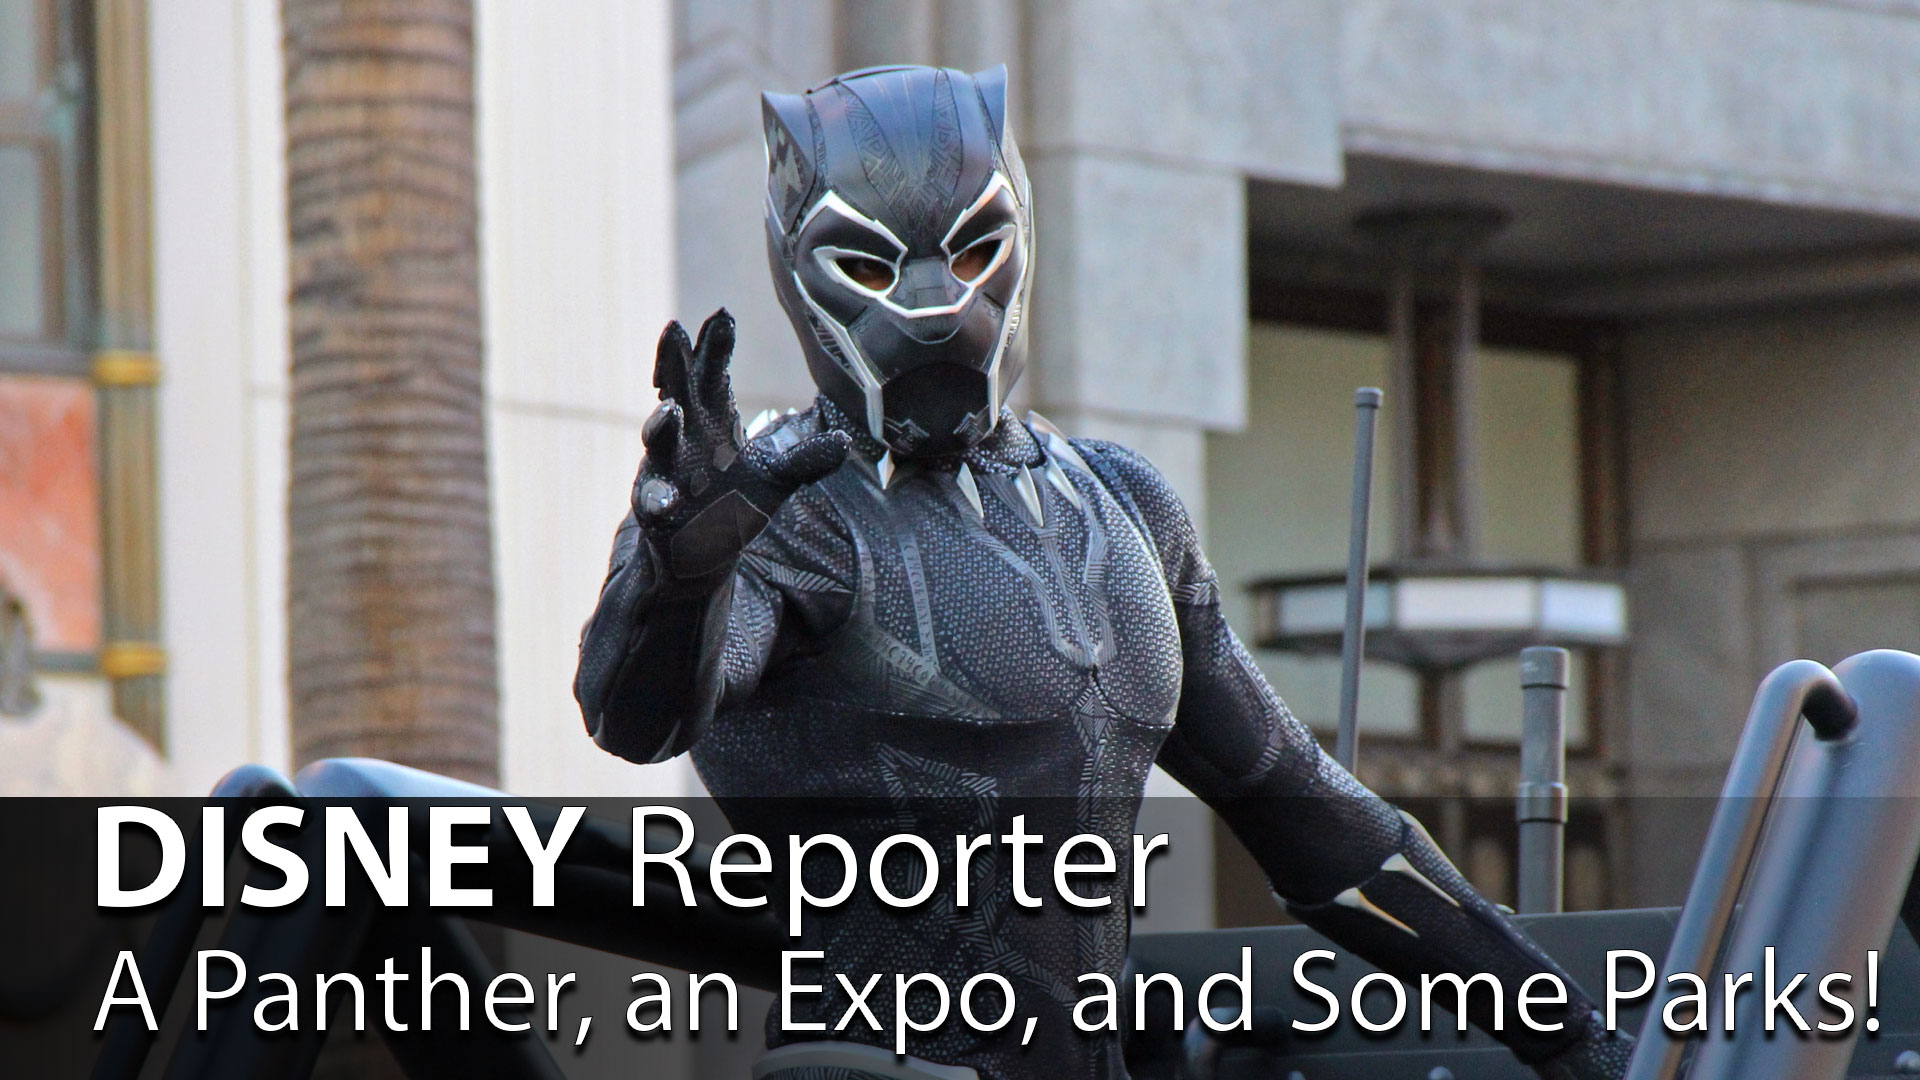 A Panther, an Expo, and Some Parks! – DISNEY Reporter